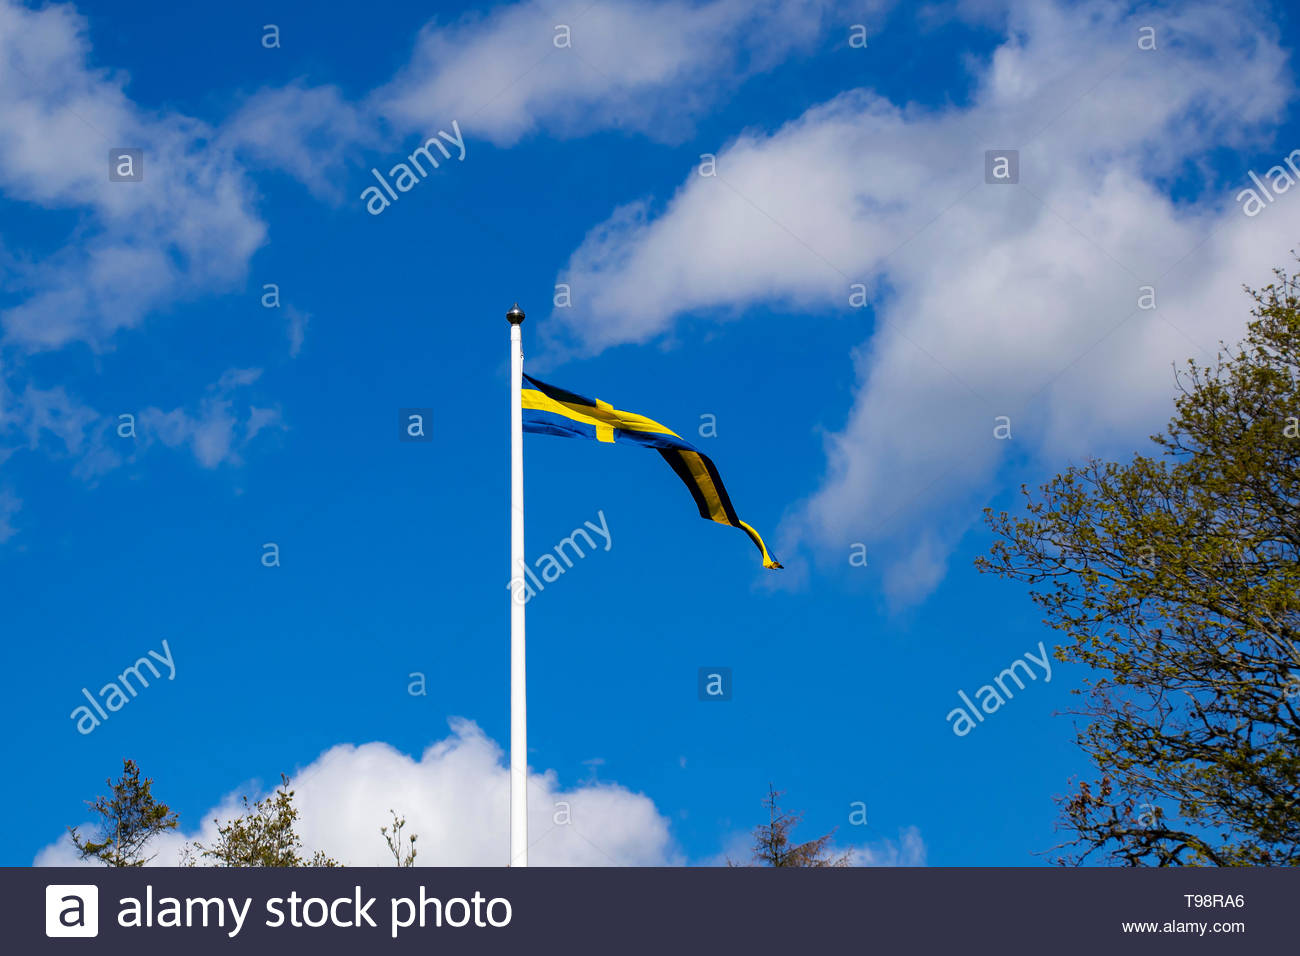 Swedish blue and yellow pennant flag on a flagpole against the blue sky and white clouds. - Stock Image